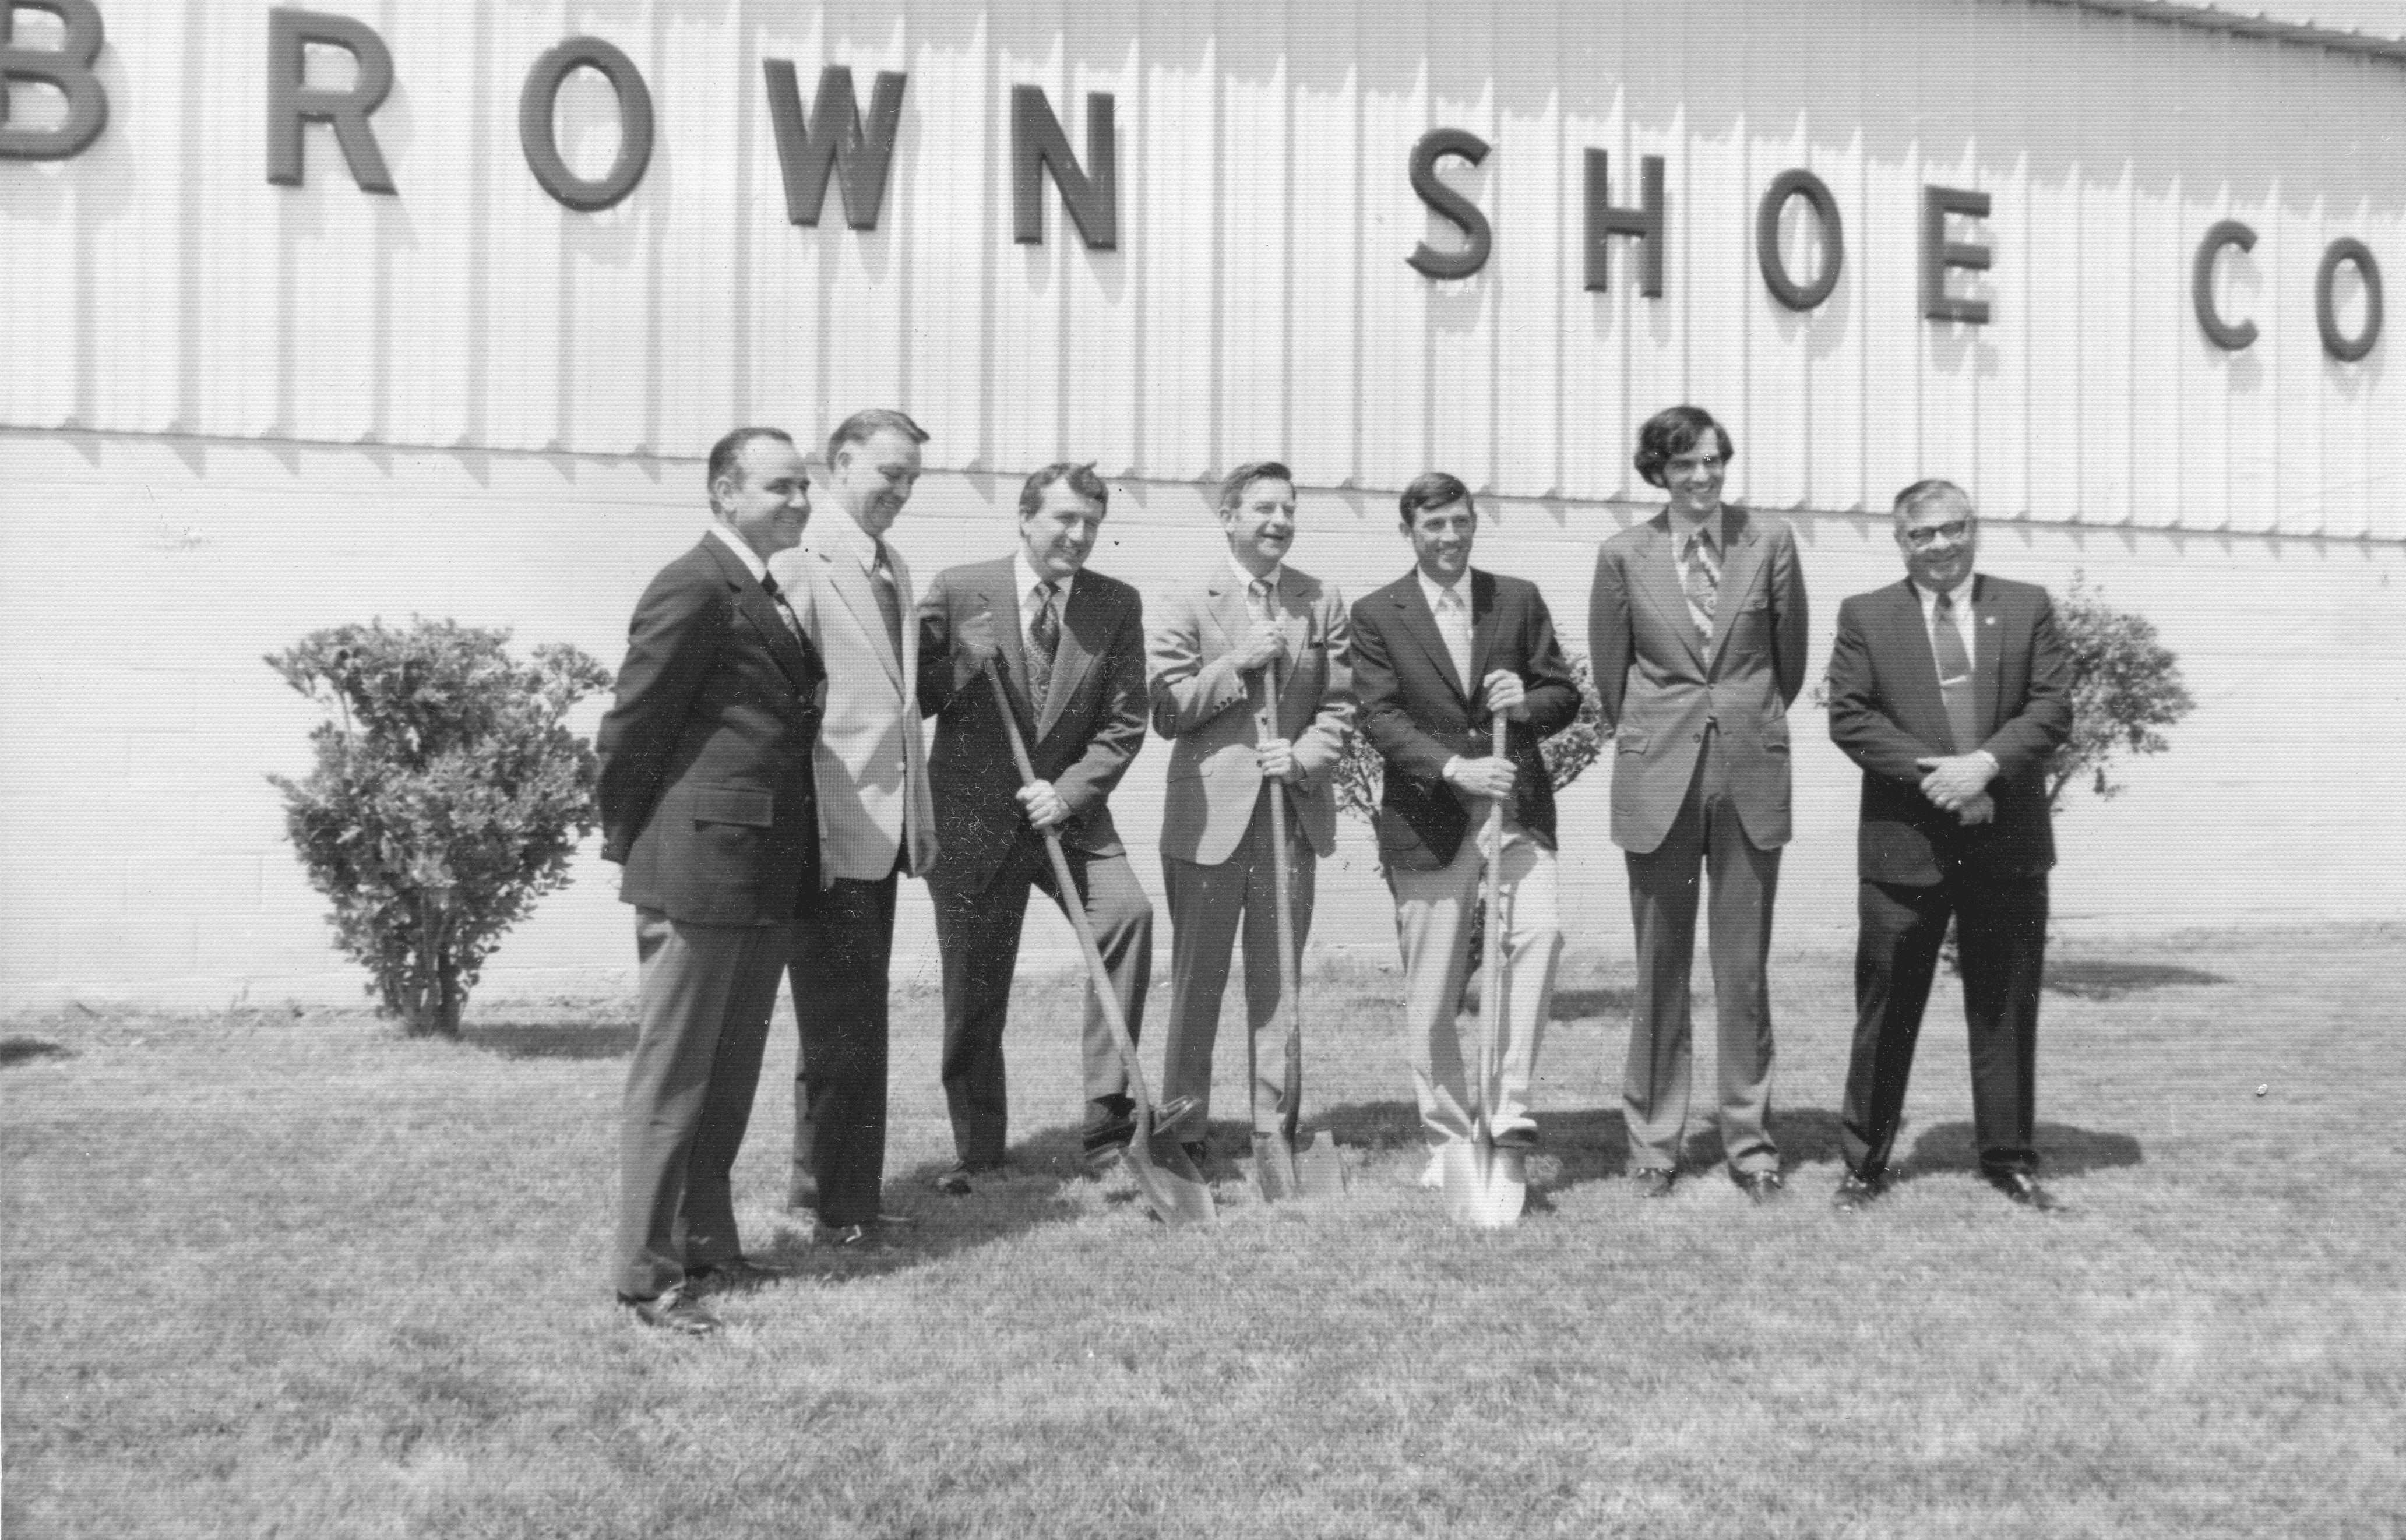 1960's – Brown Shoe Company Ground Breaking